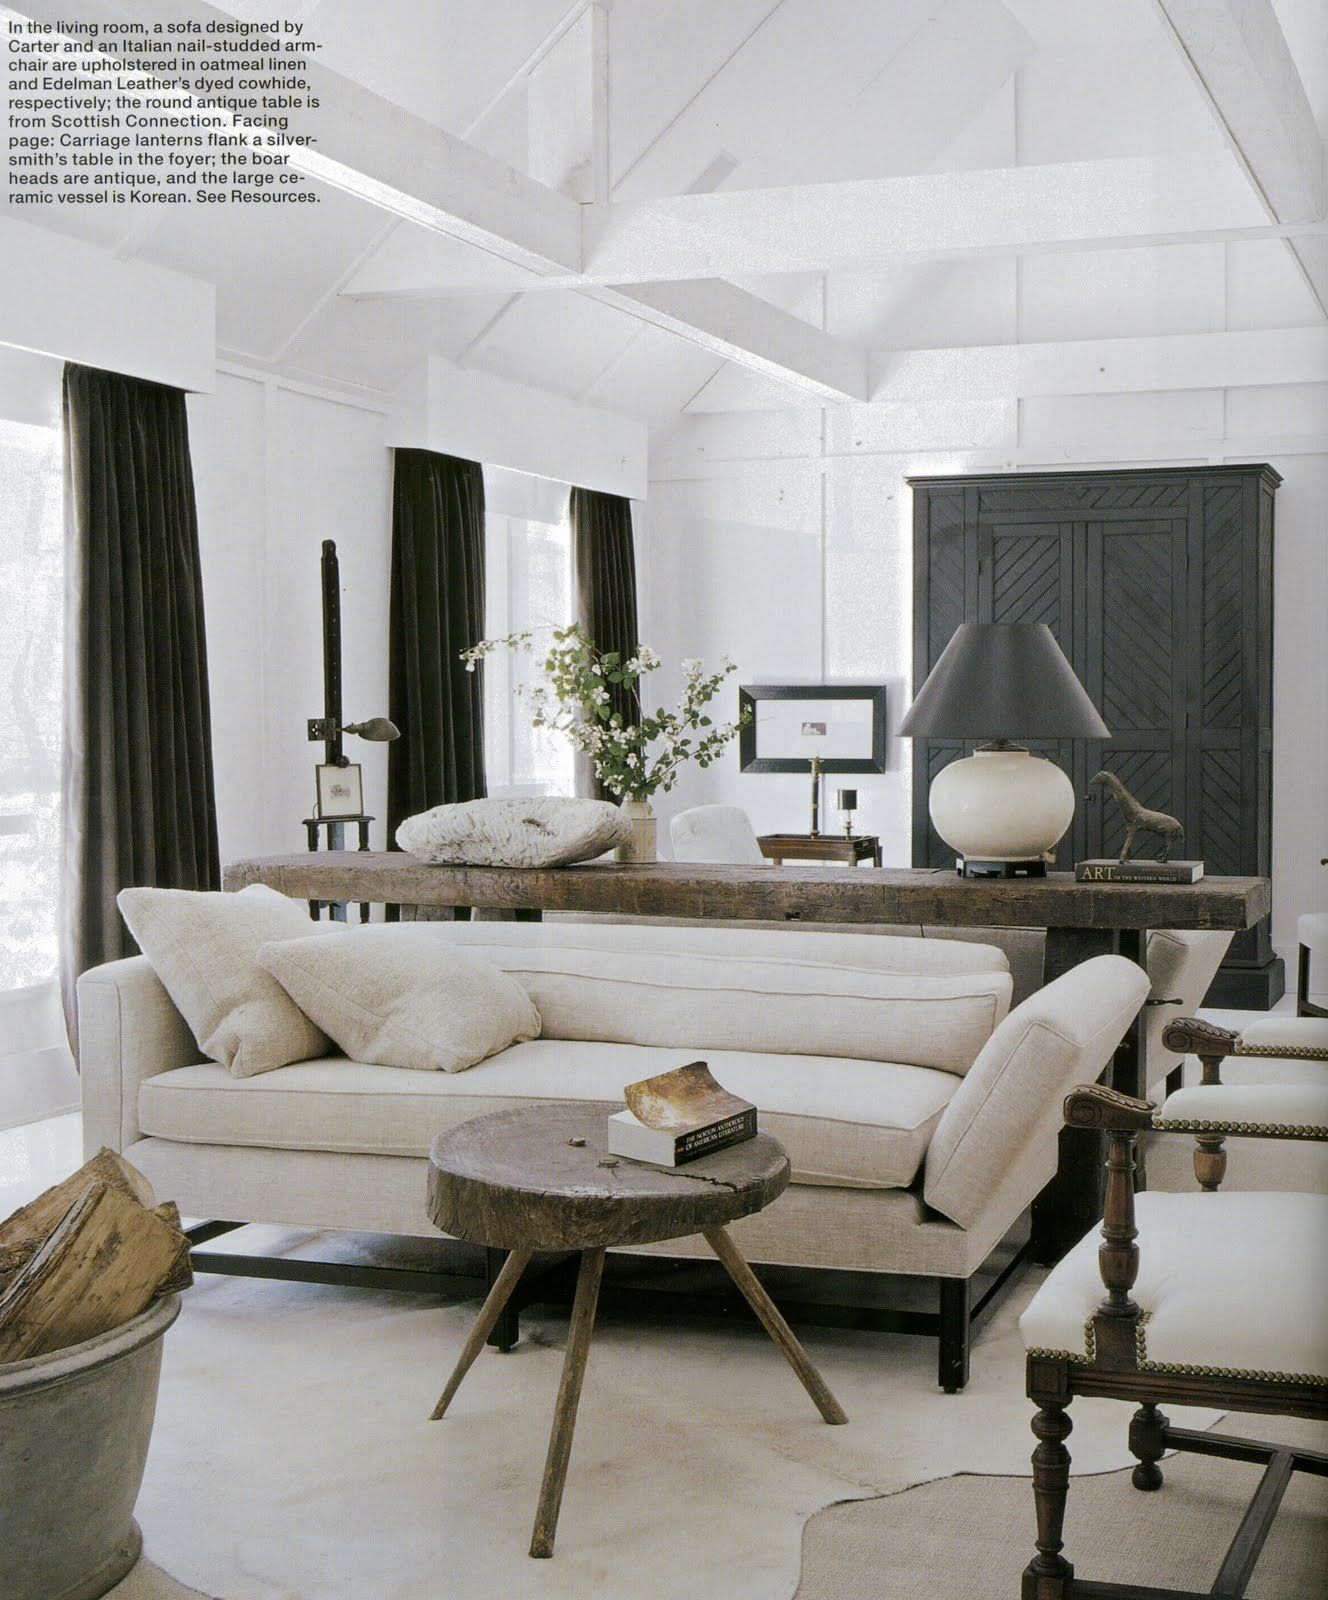 Willow Bee Inspired: Color Palette No. 4 - Black and White | Home ...